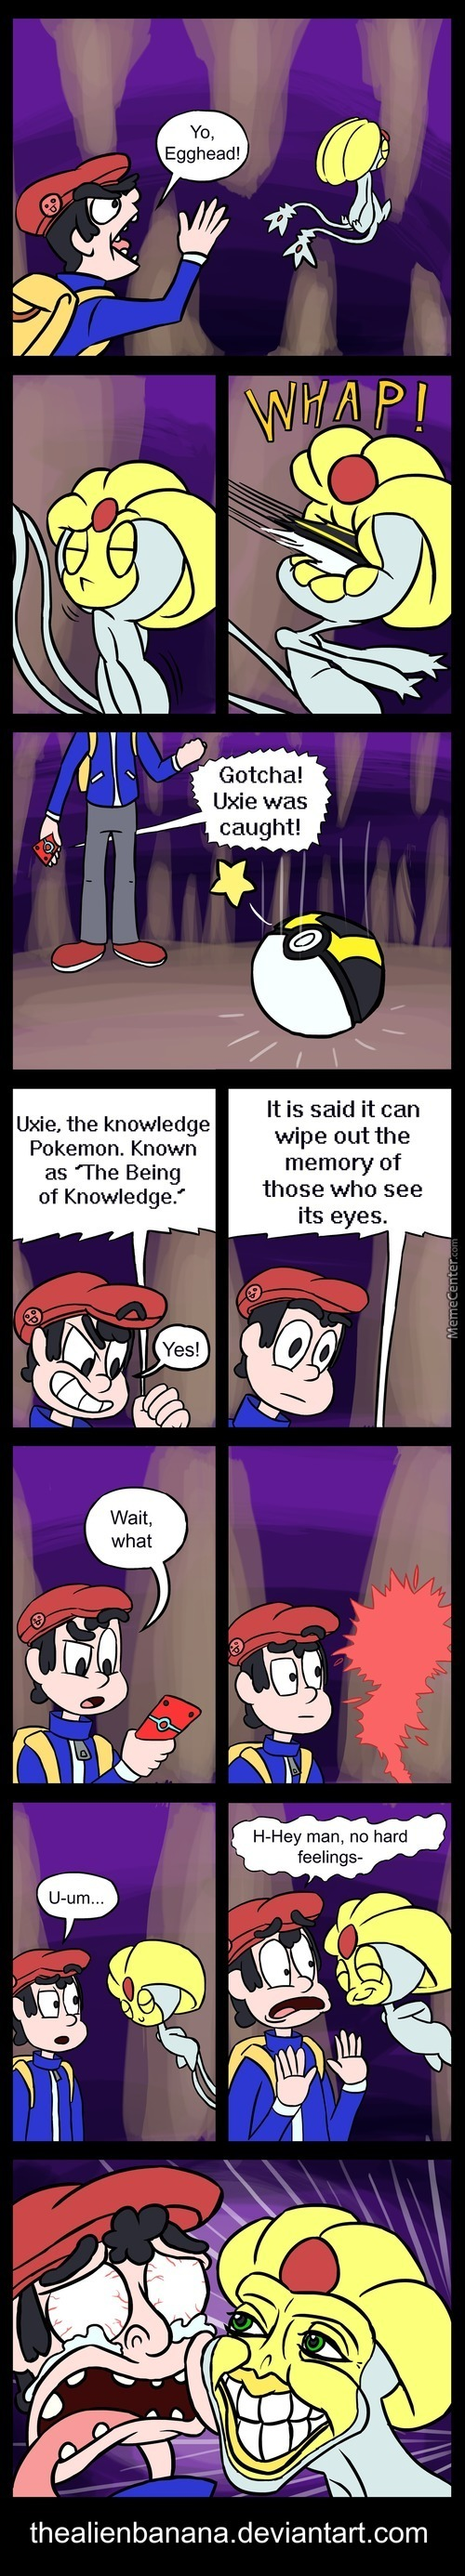 pokemon comic memes best collection of funny pokemon comic pictures